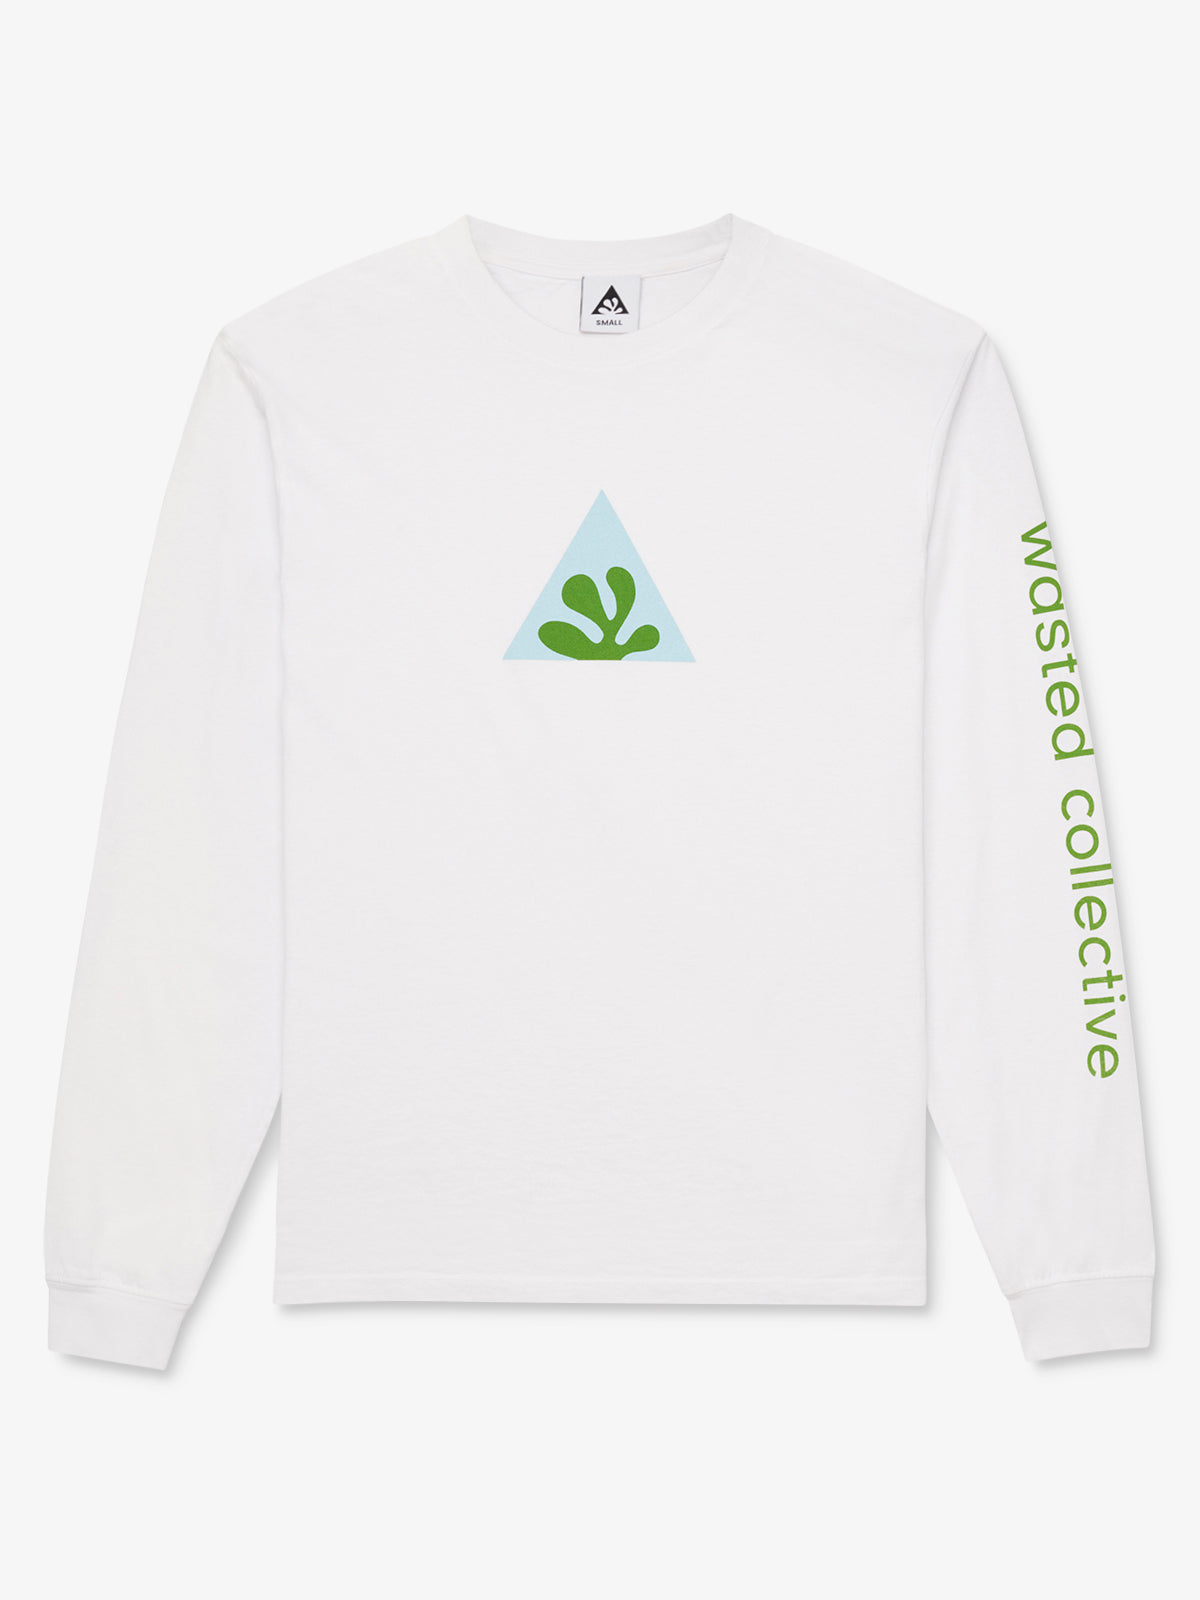 White long sleeve cotton shirt with blue and green leaf graphic on chest and text graphic on sleeve reading 'Wasted Collective'